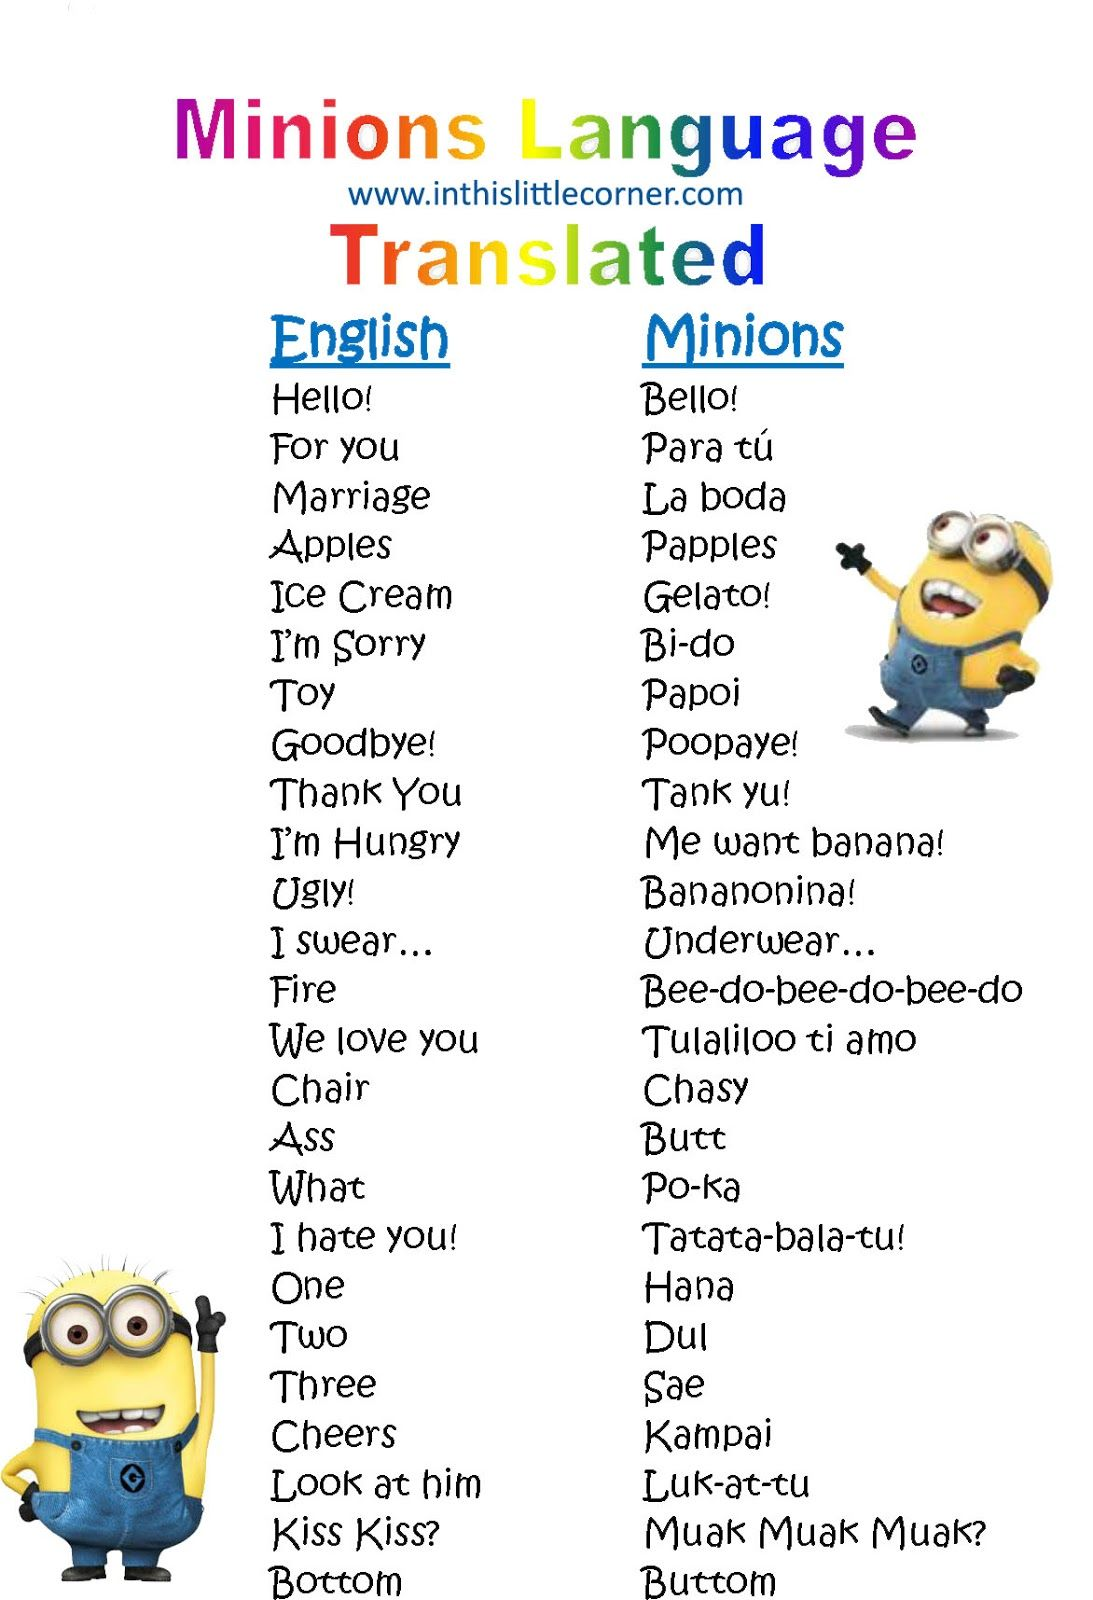 Free Minions Printable! Minions Despicable Me Language Translator   This Is  Just Too Cute. Print It For The Kids For The New Minions Movie!